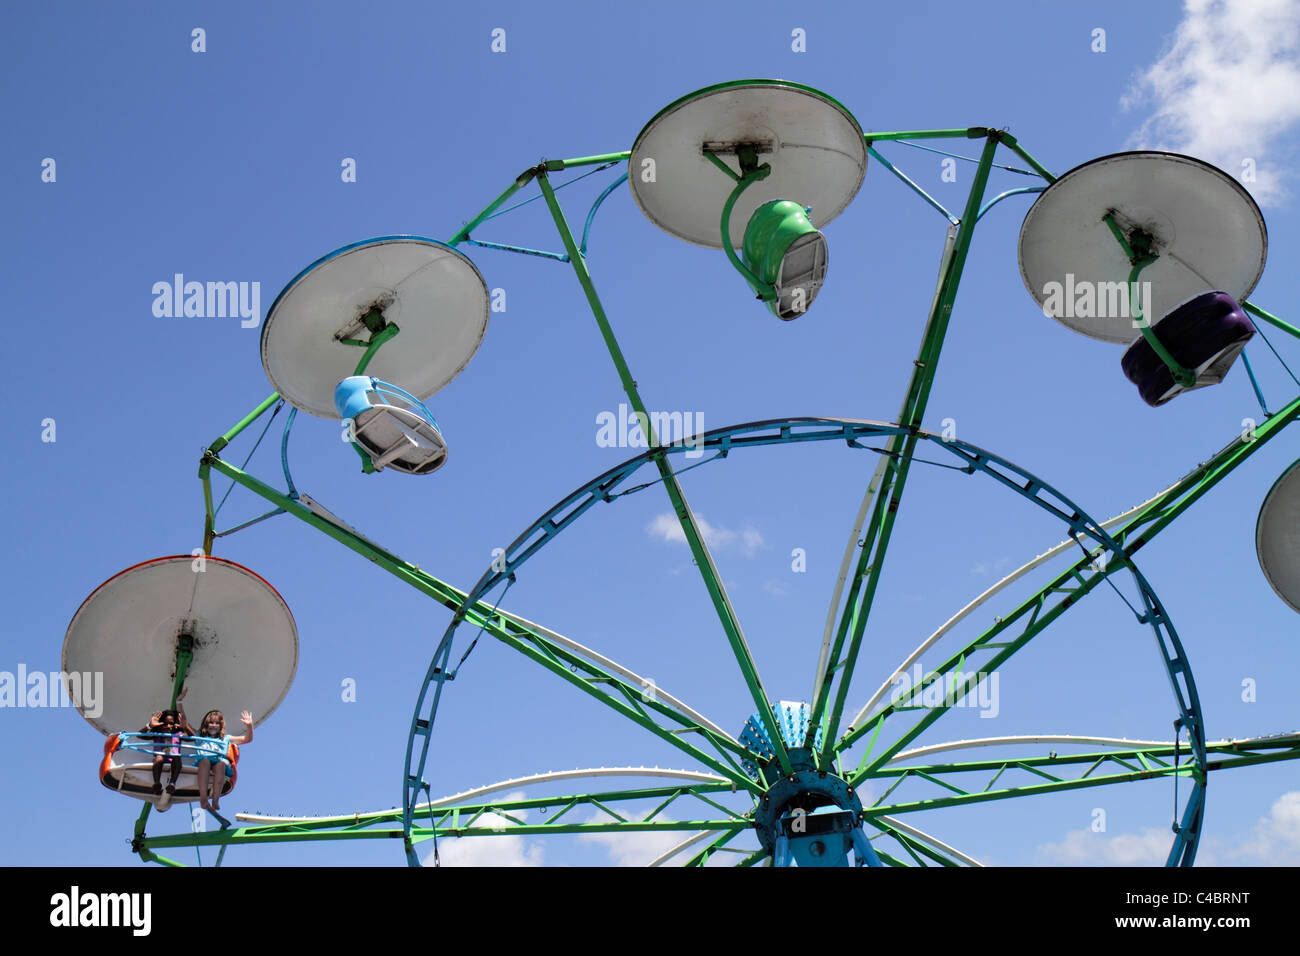 Florida Palatka Blue Crab Festival annual event carnival ride whirling swing girl girls wave Black - Stock Image